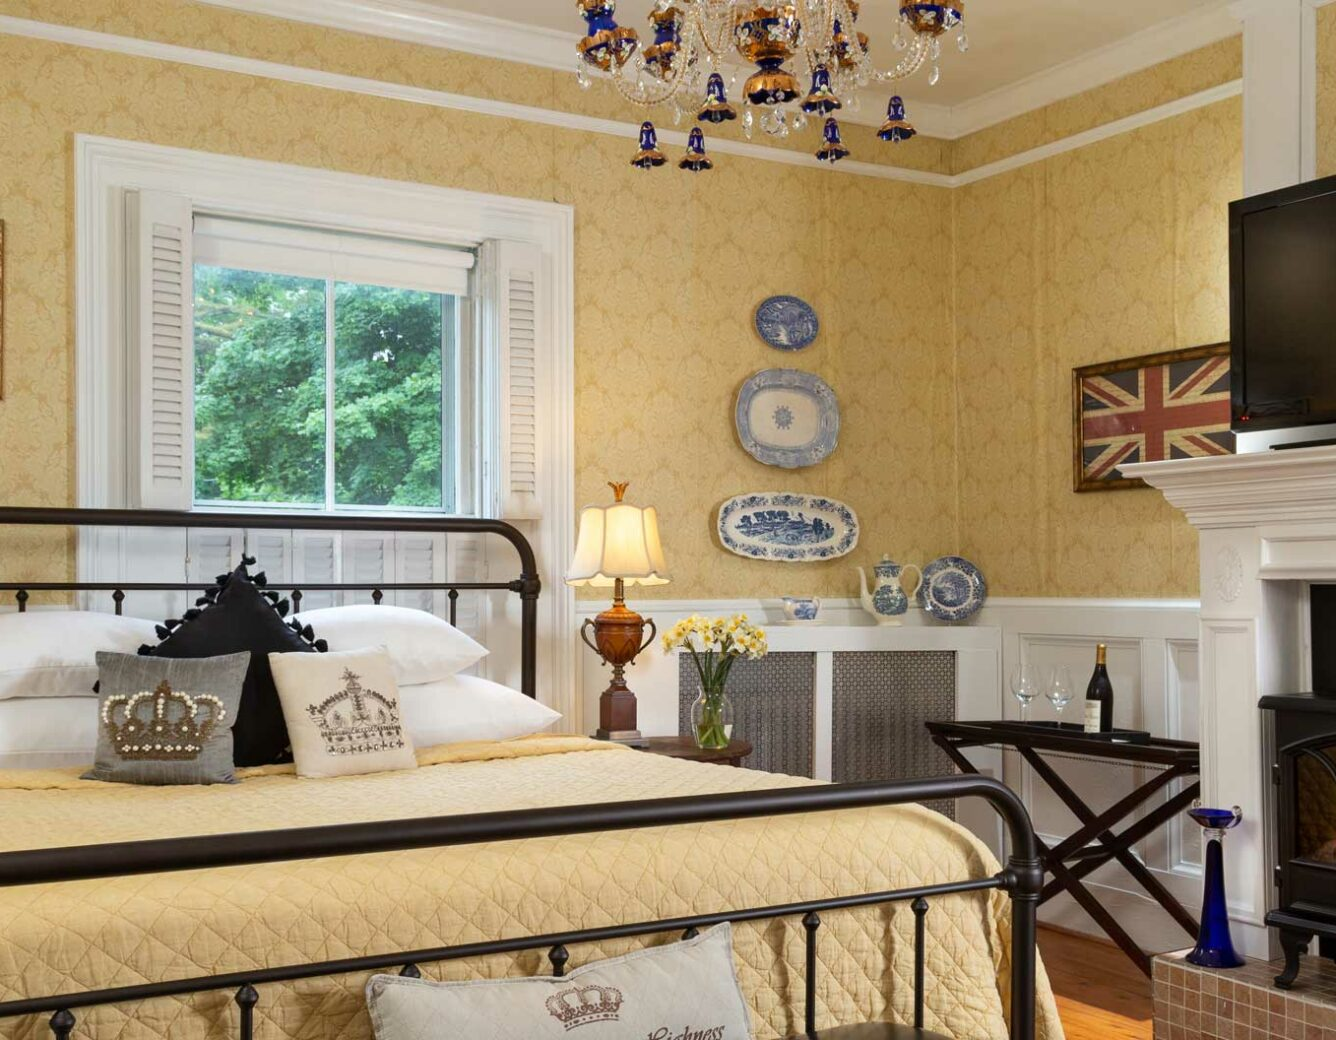 Captain Nickels London Room Overview